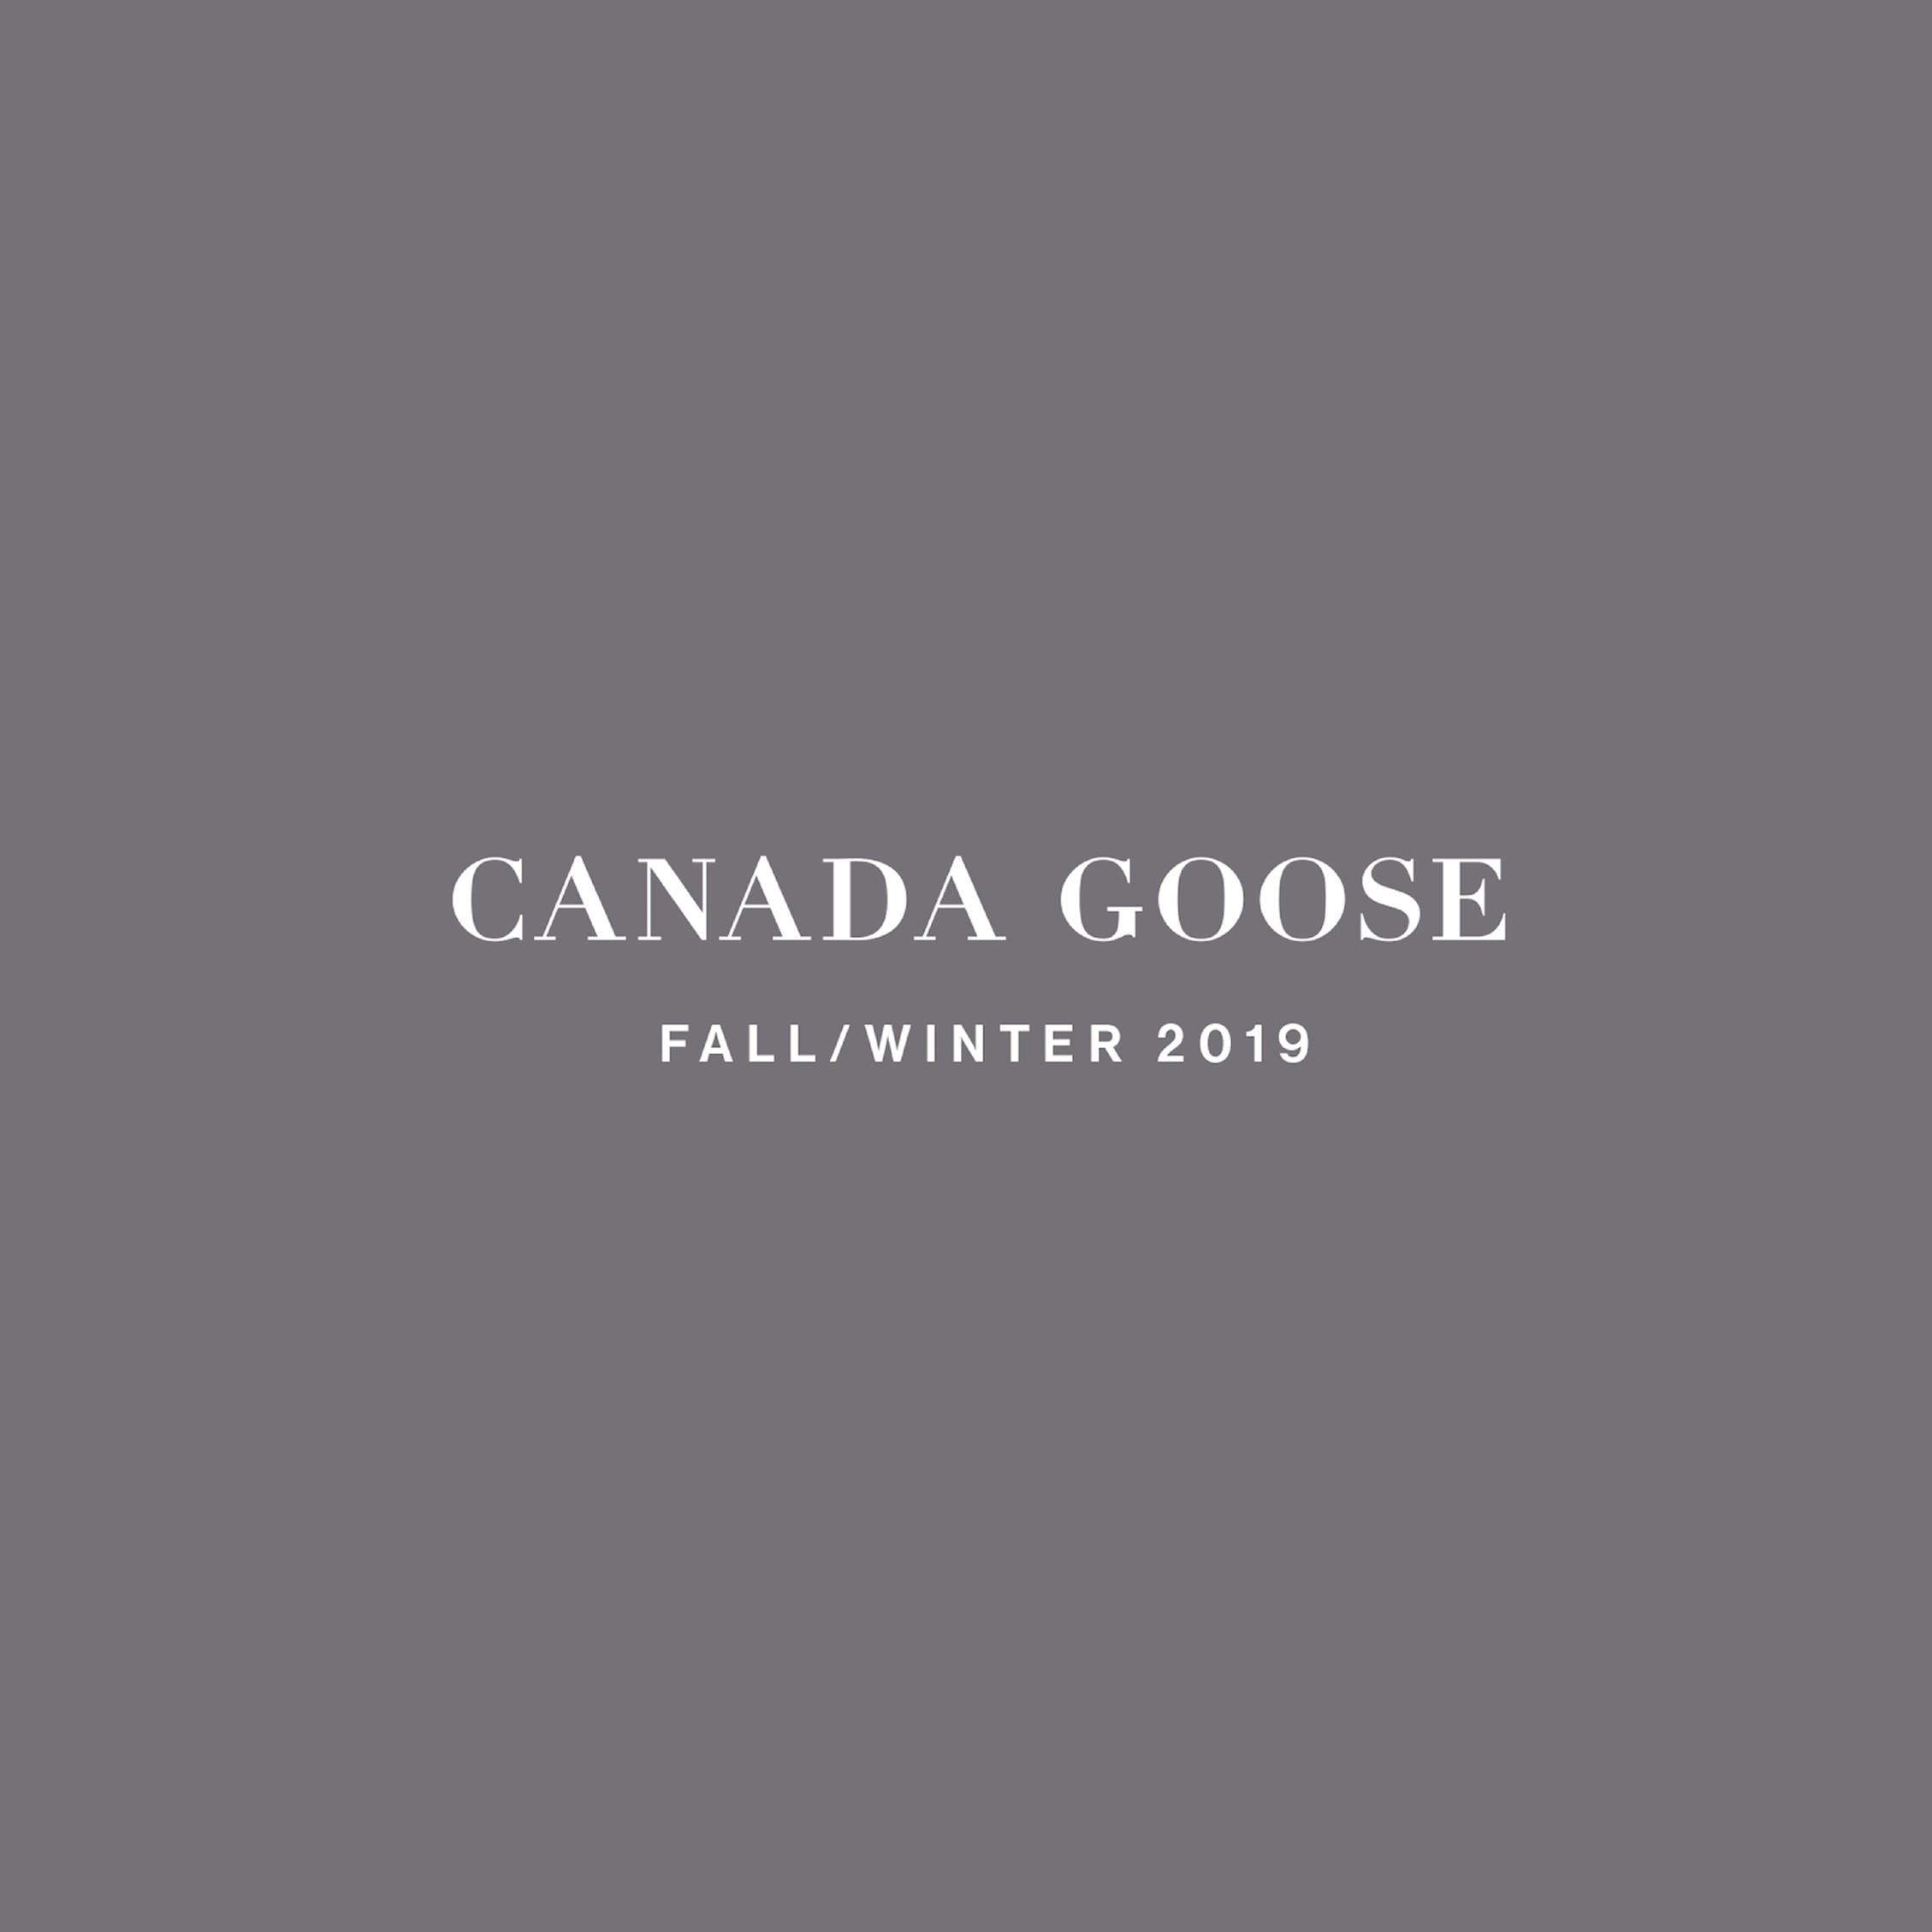 CANADA GOOSE 2019 FW NEW COLLECTION